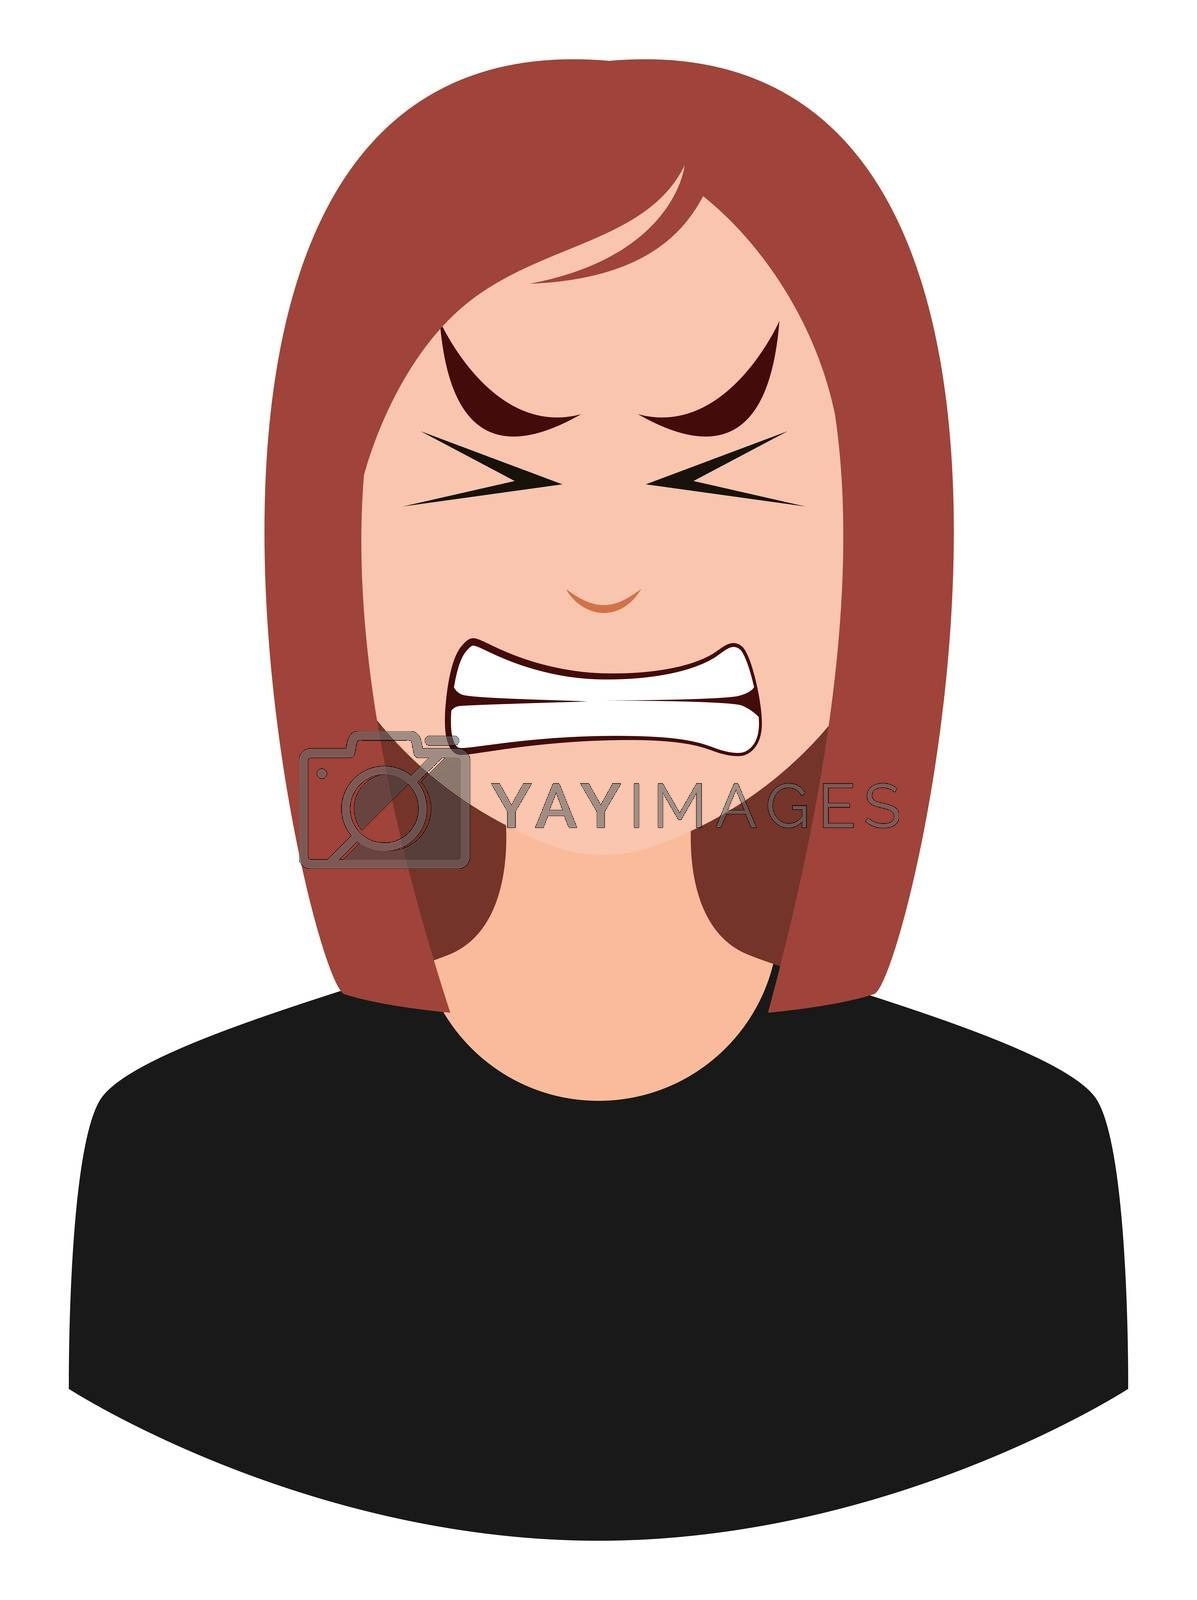 Royalty free image of Angry female, illustration, vector on white background by Morphart